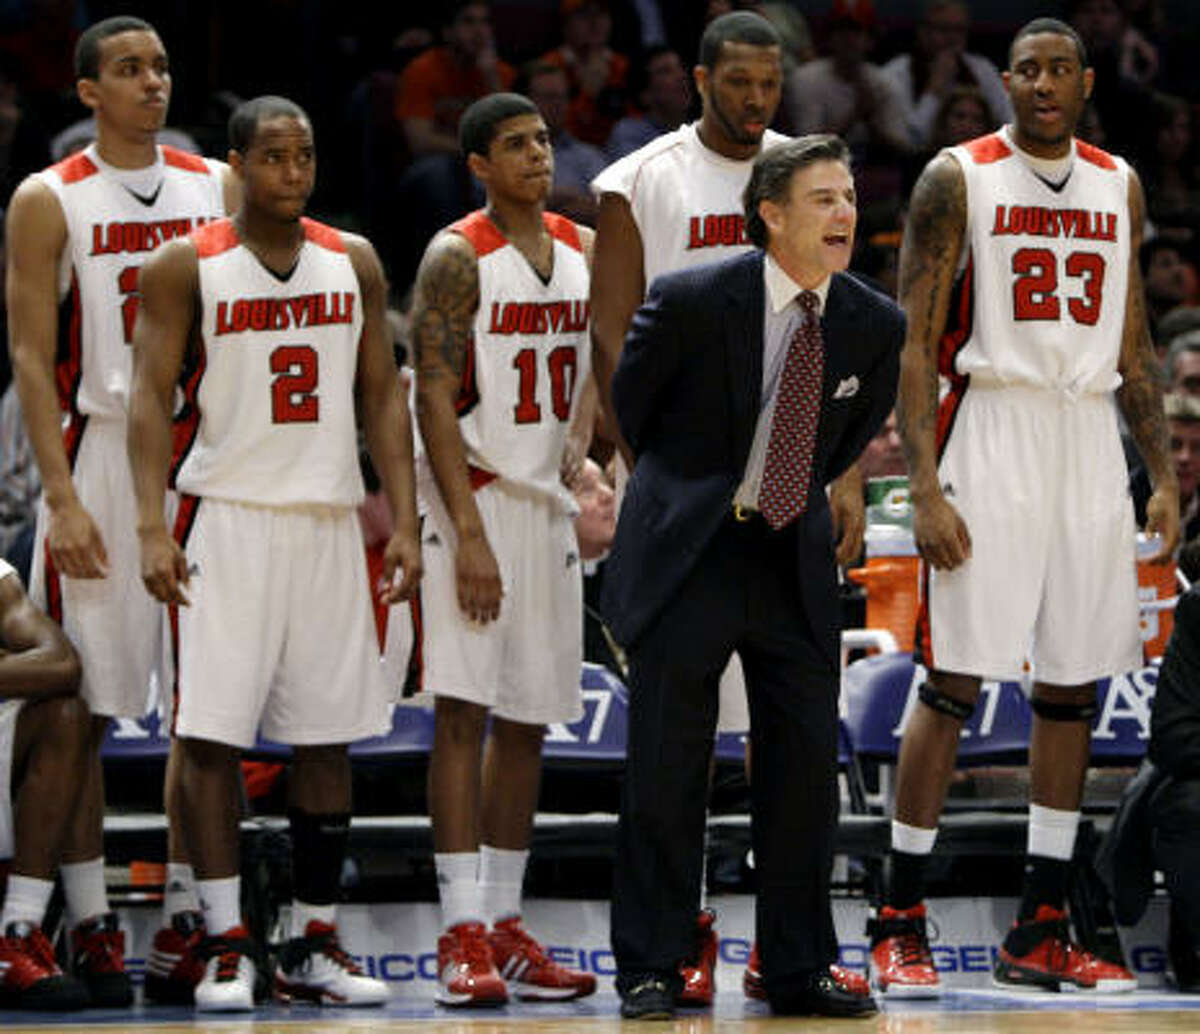 Team: Louisville (27-5) Conference: Big East